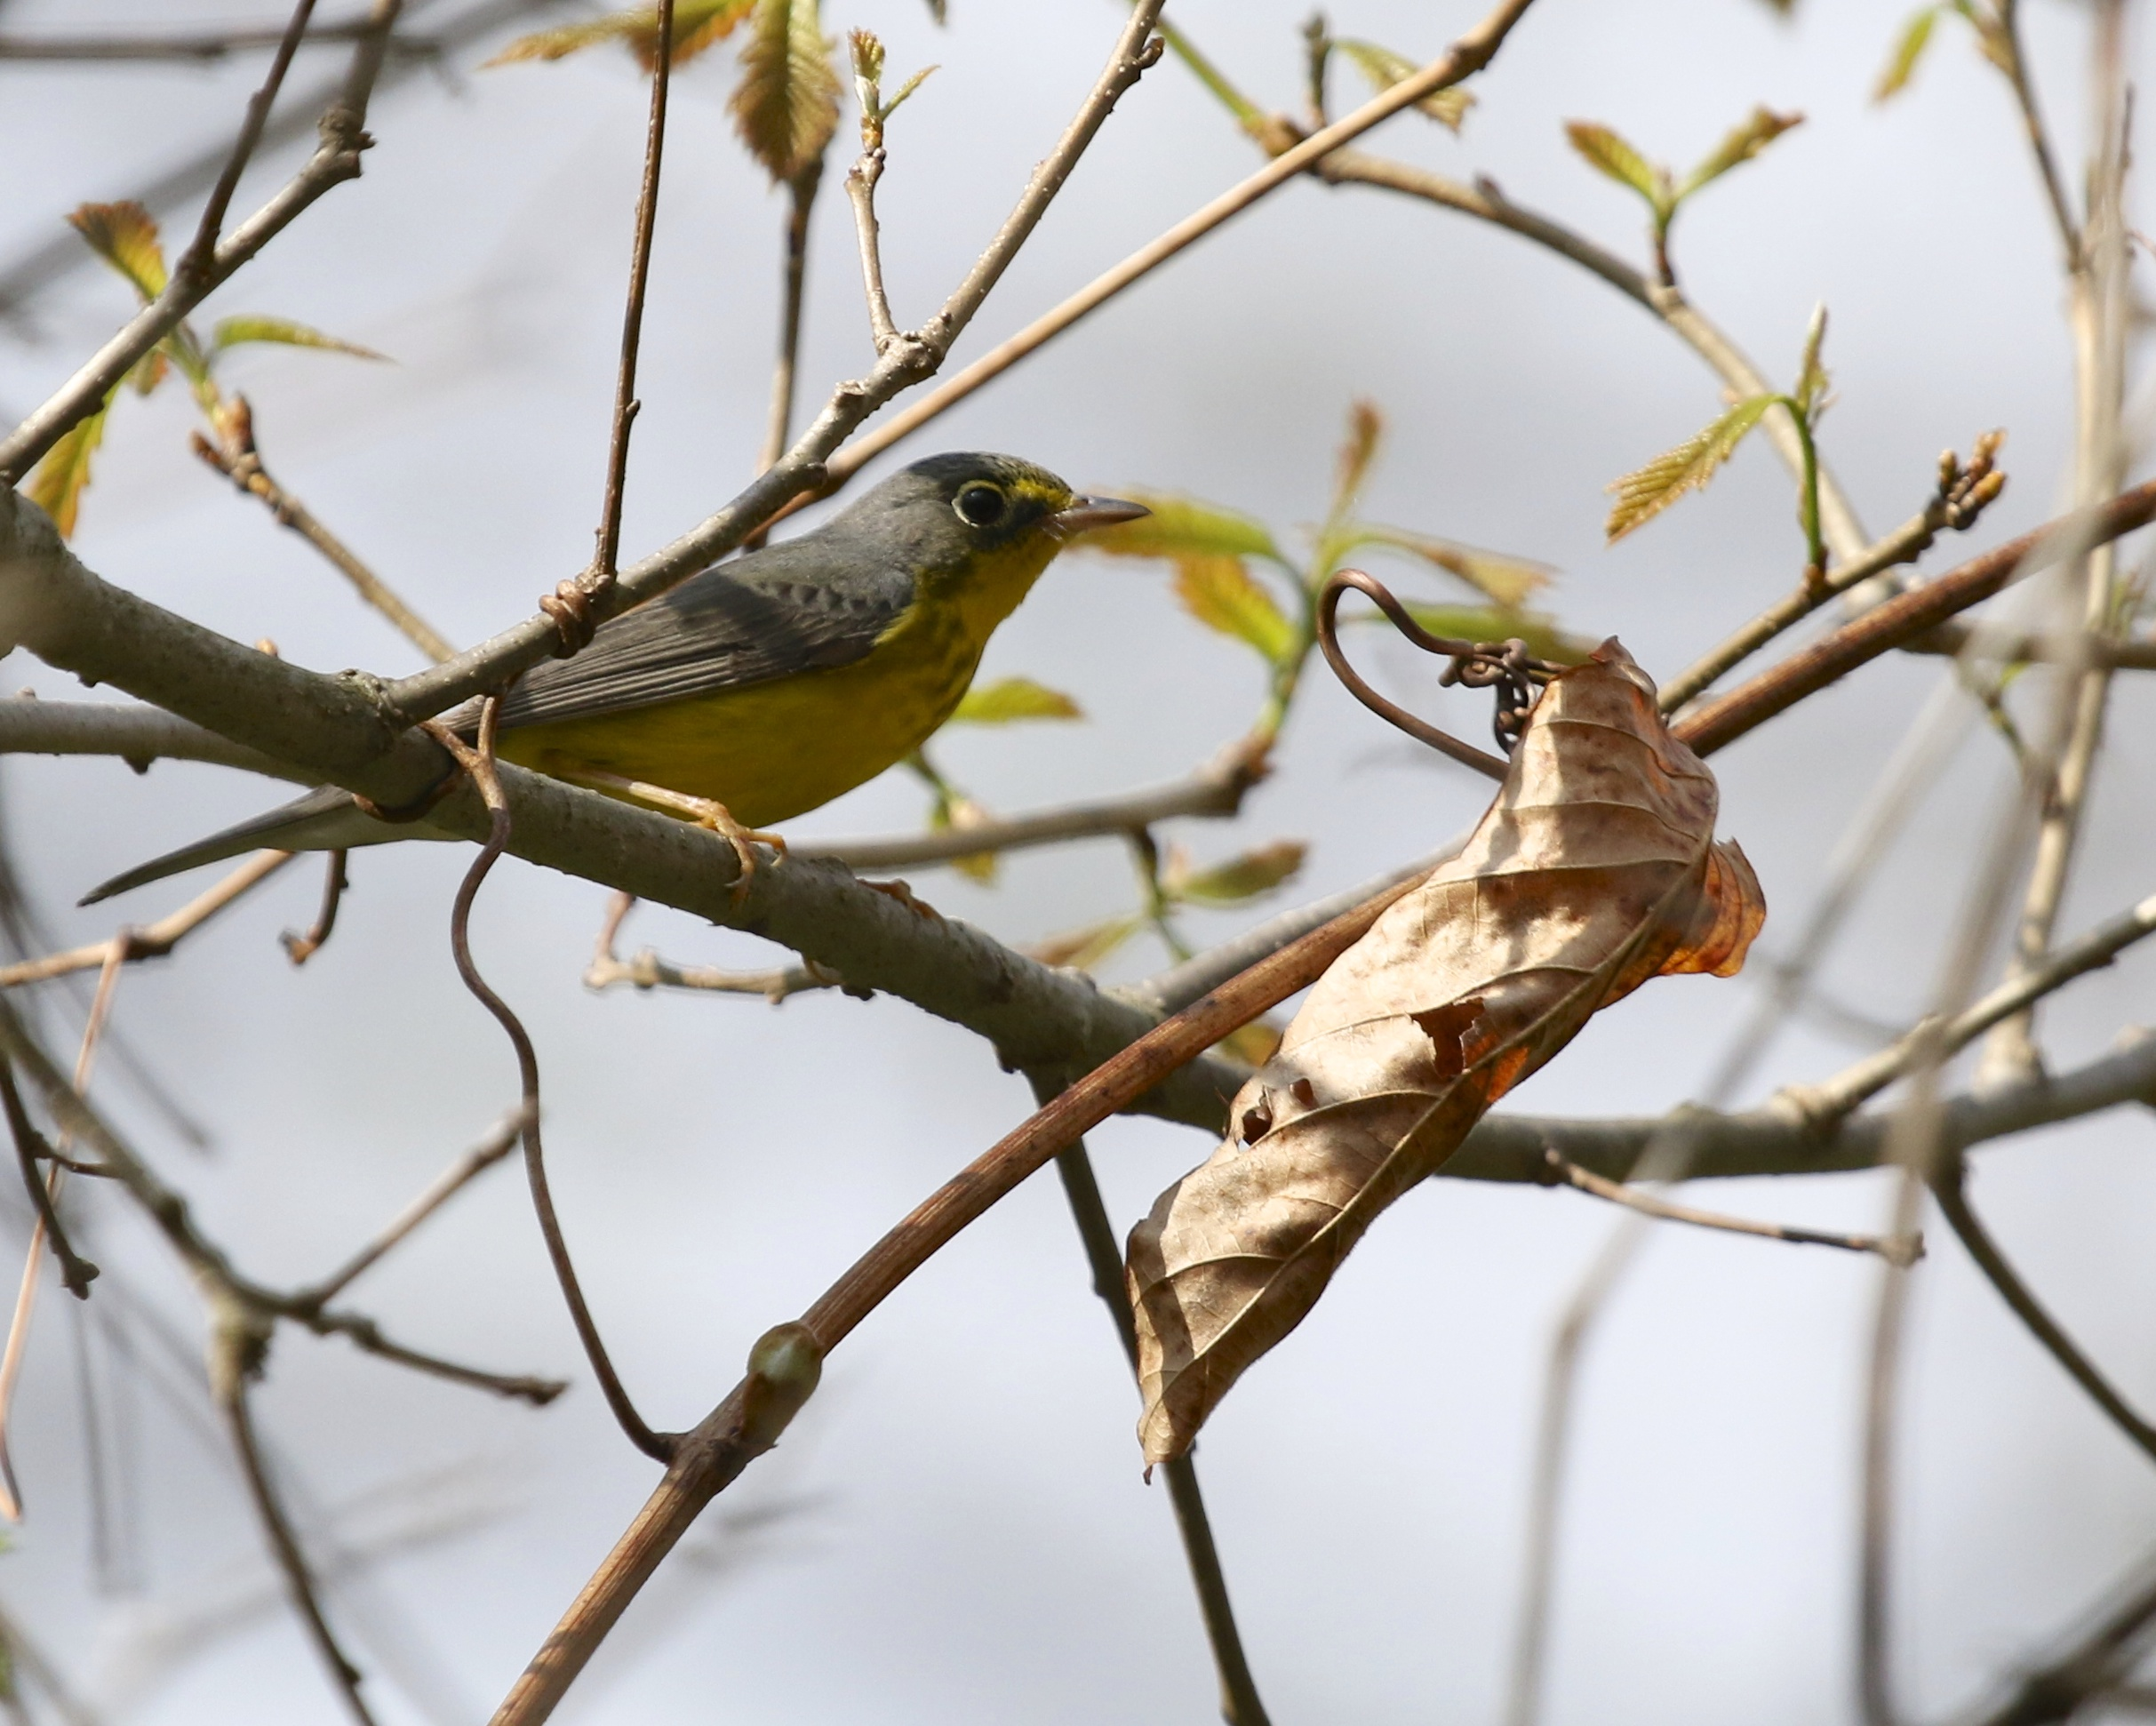 Canada Warbler on the Nature Trail at the Bashakill, 5/10/14.